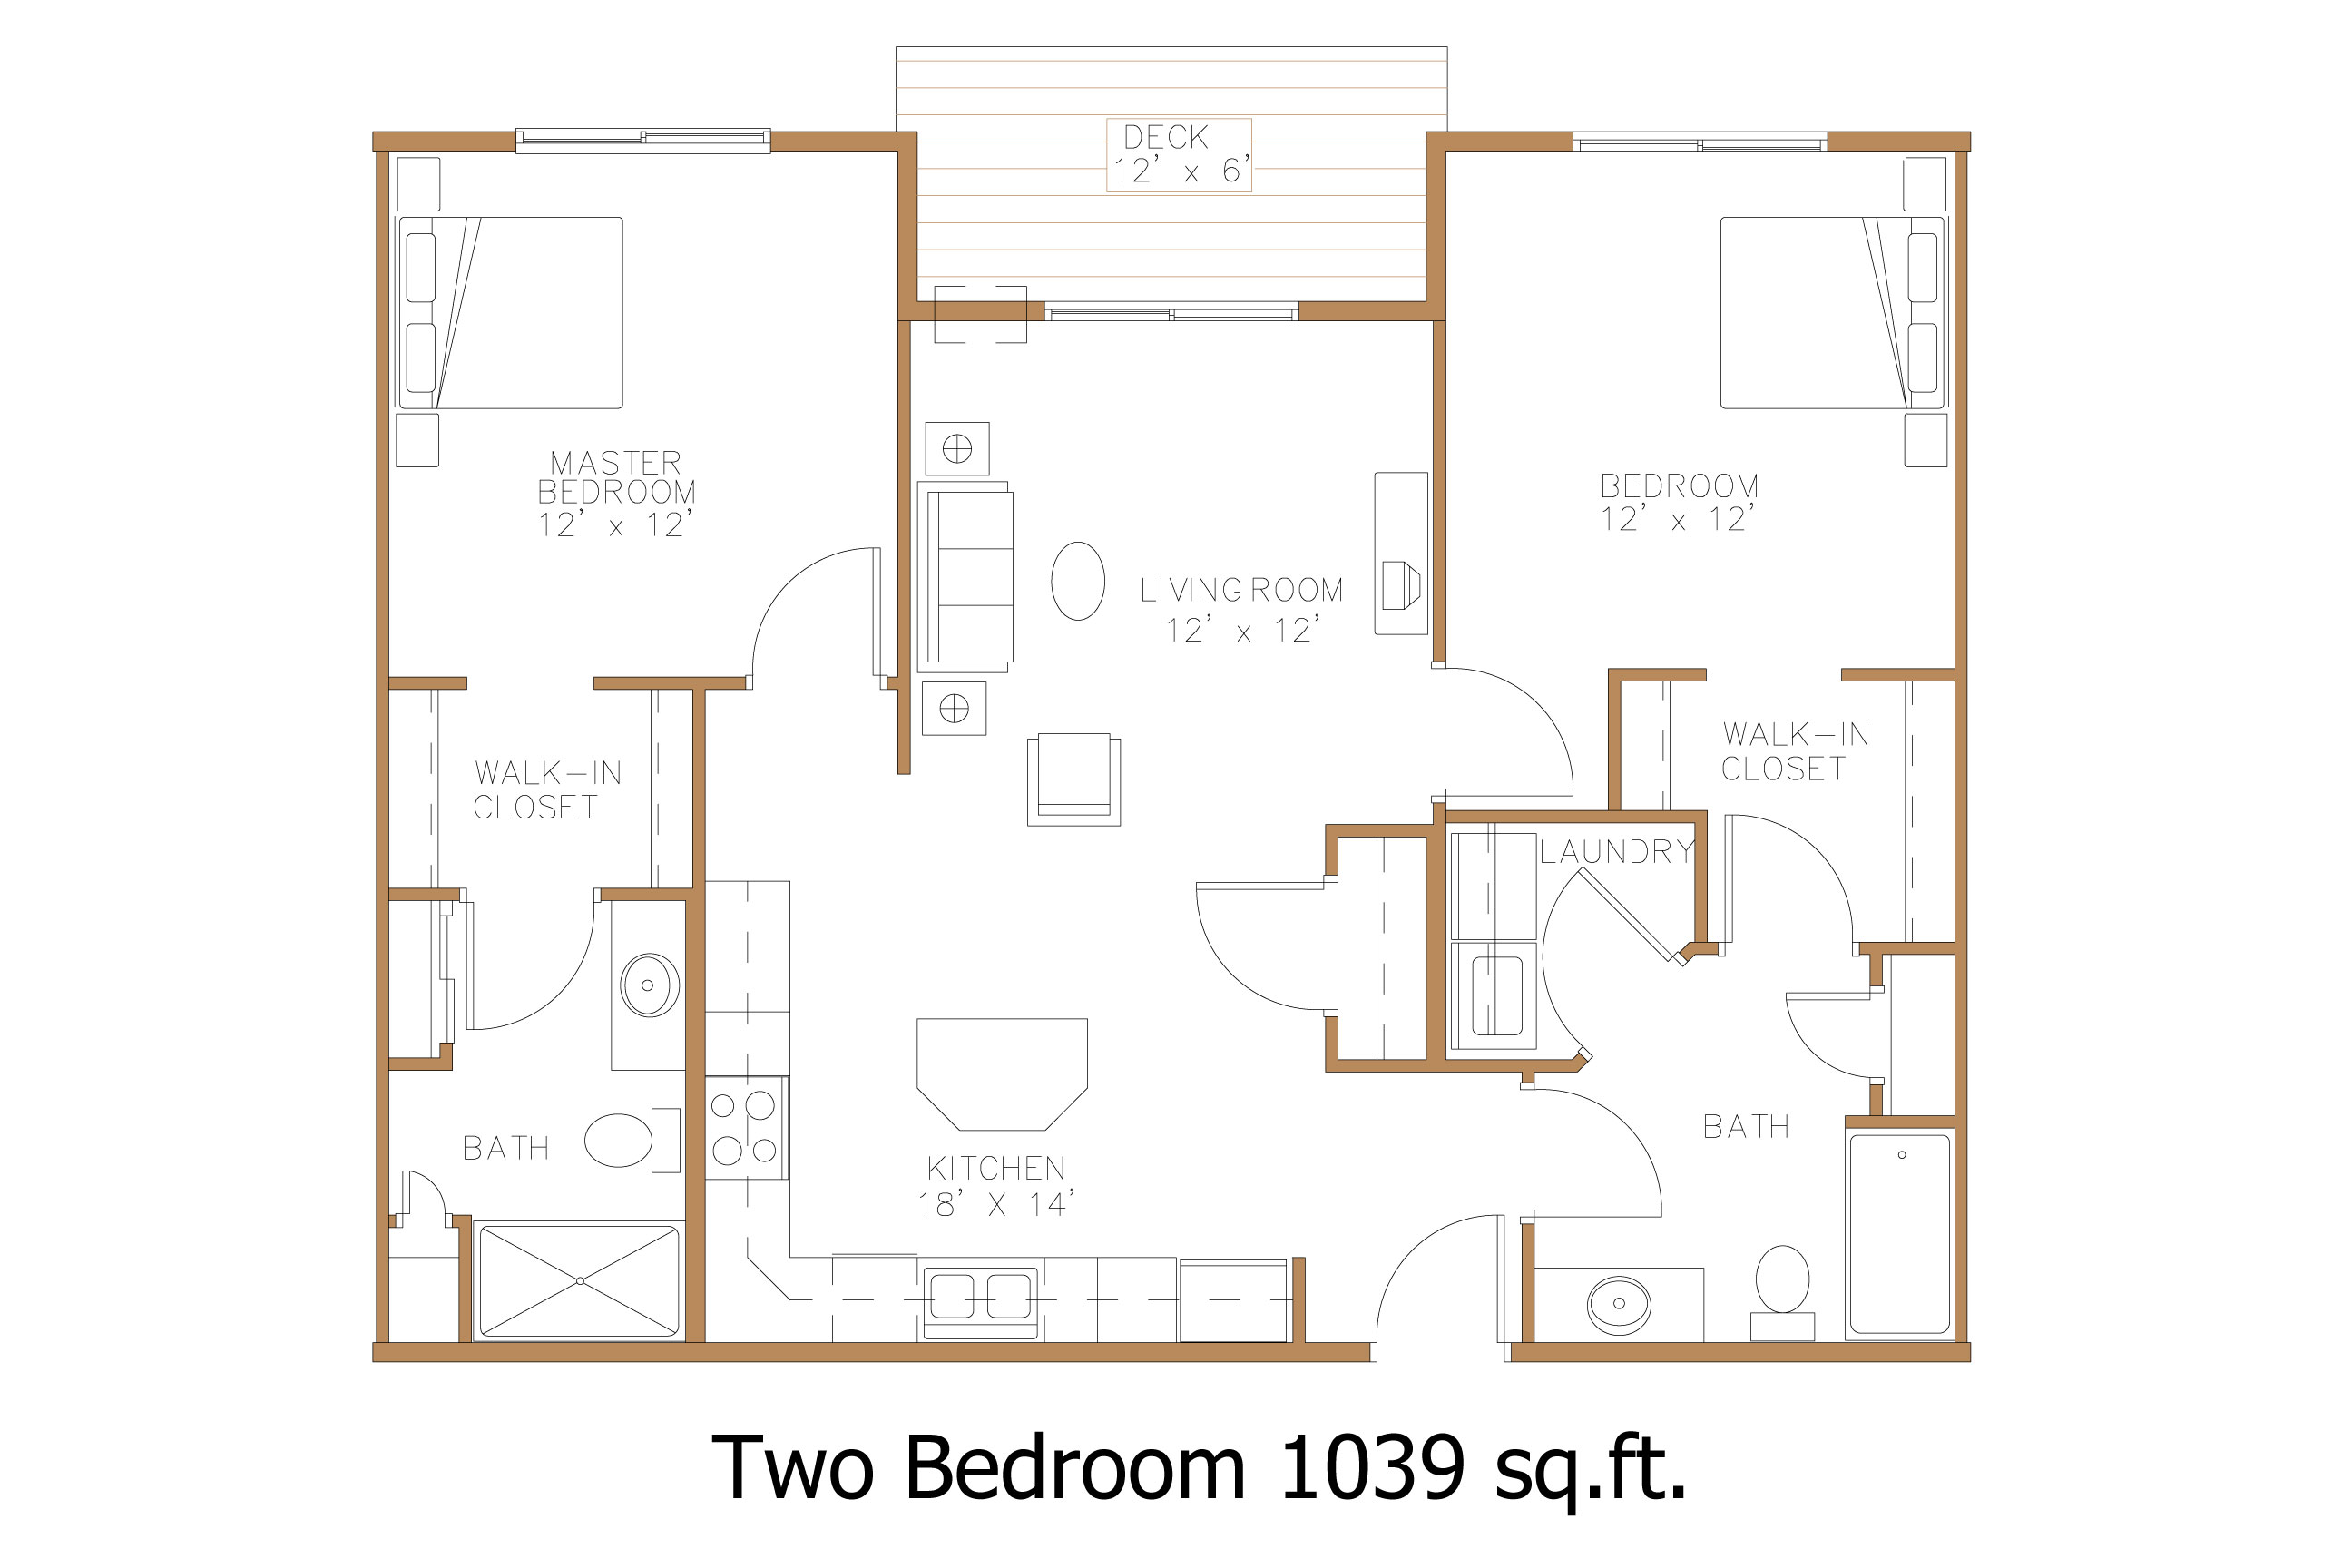 Hawley mn apartment floor plans great north properties llc for 2 bedroom 2 bath apartment floor plans